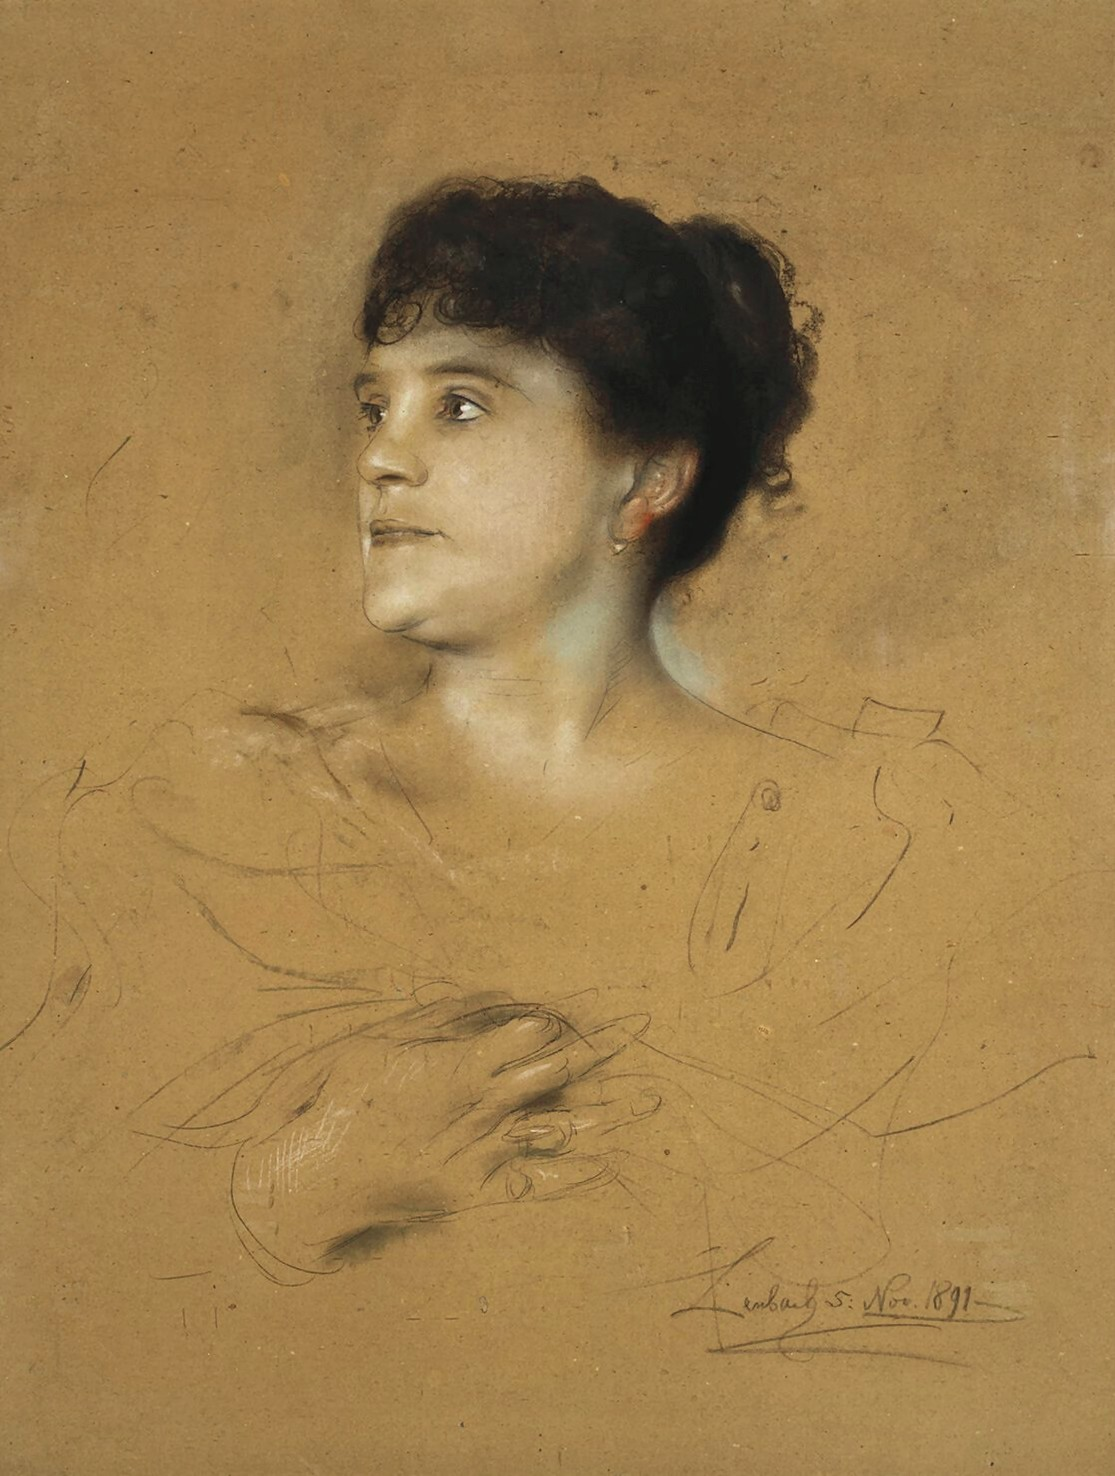 Franz  von  Lenbach  portrait  of  marcella  sembrich